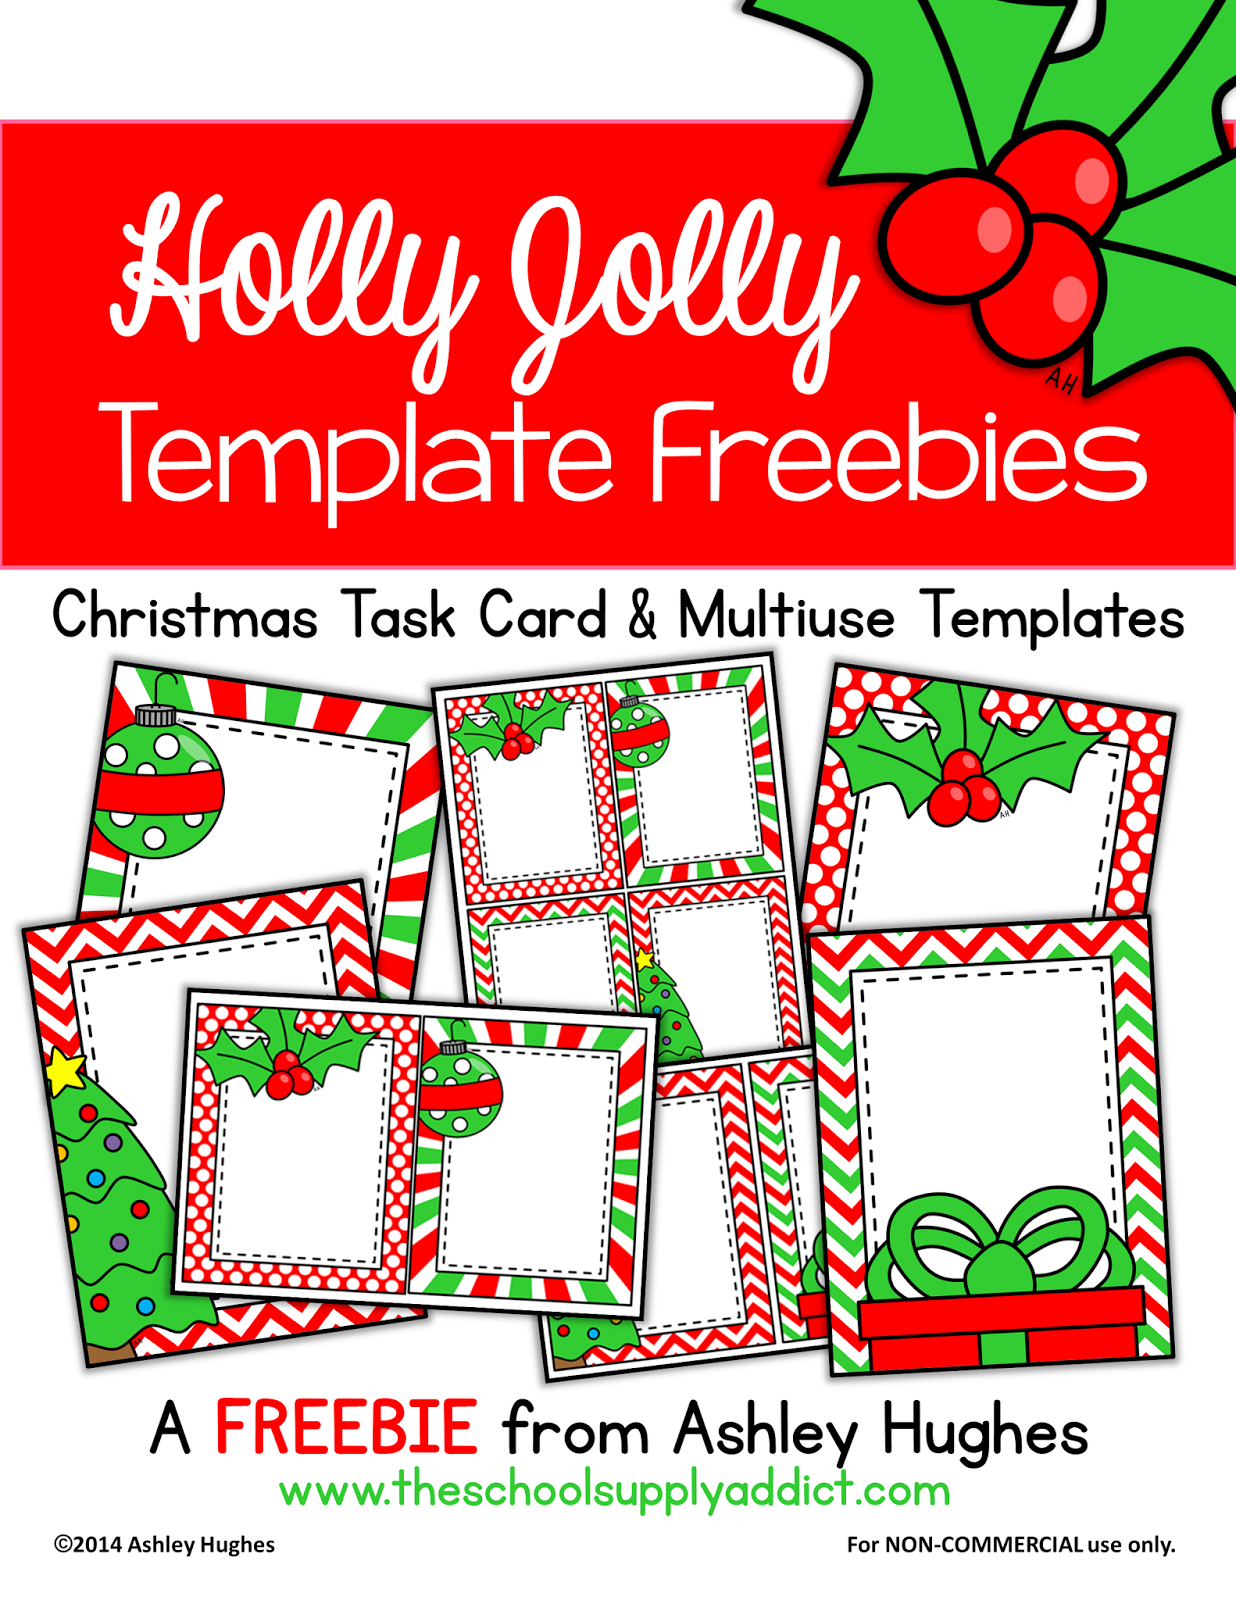 Holly Jolly Template Freebies {Ashley Hughes}